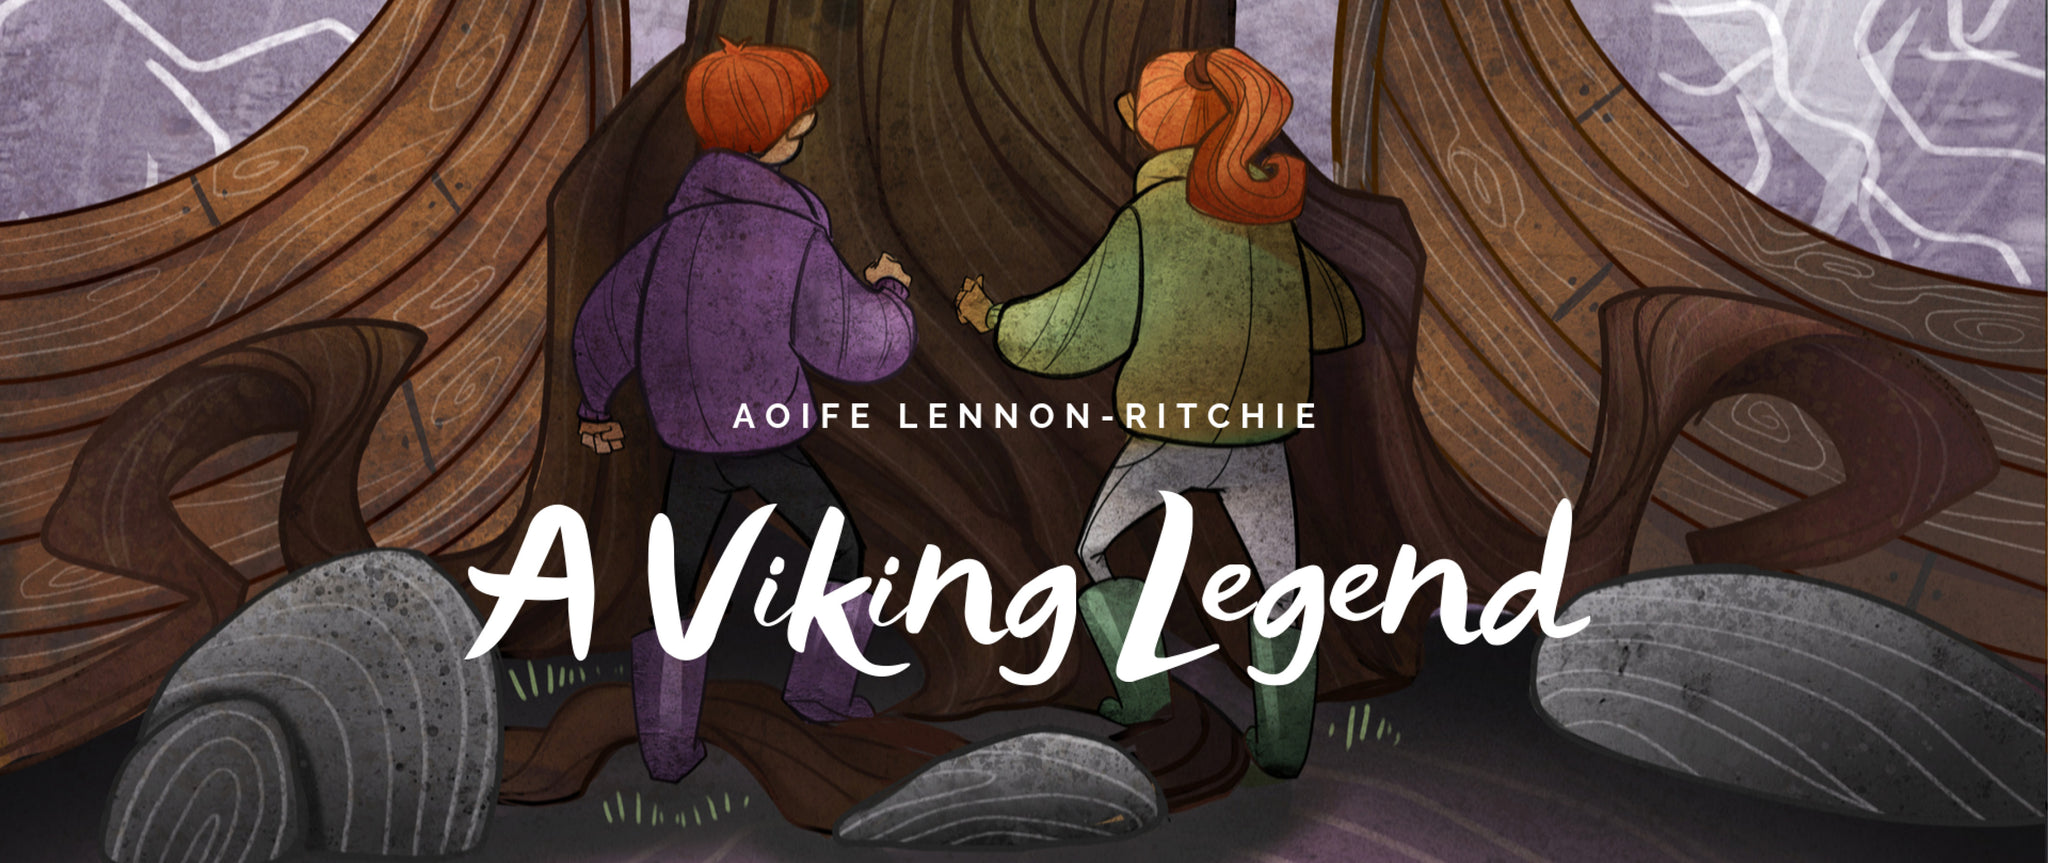 Book Launch: A Viking Legend by Aoife Lennon-Ritchie